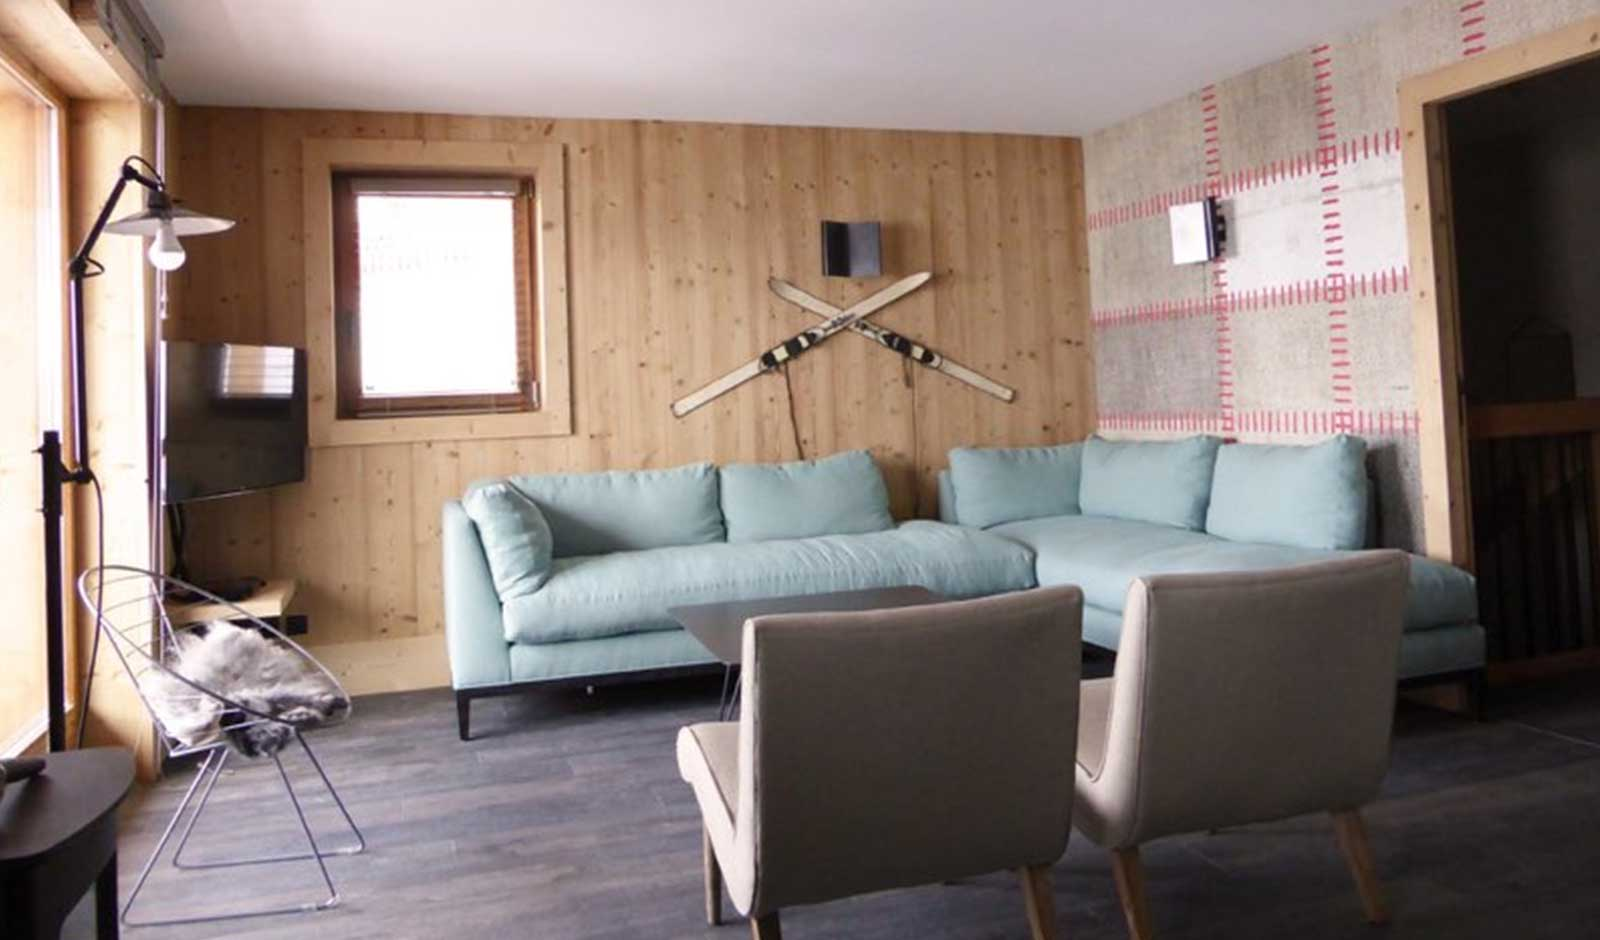 chalet-iselime-3-atelier-crea-and-co-architecte-design-project-manager-meribel-savoie